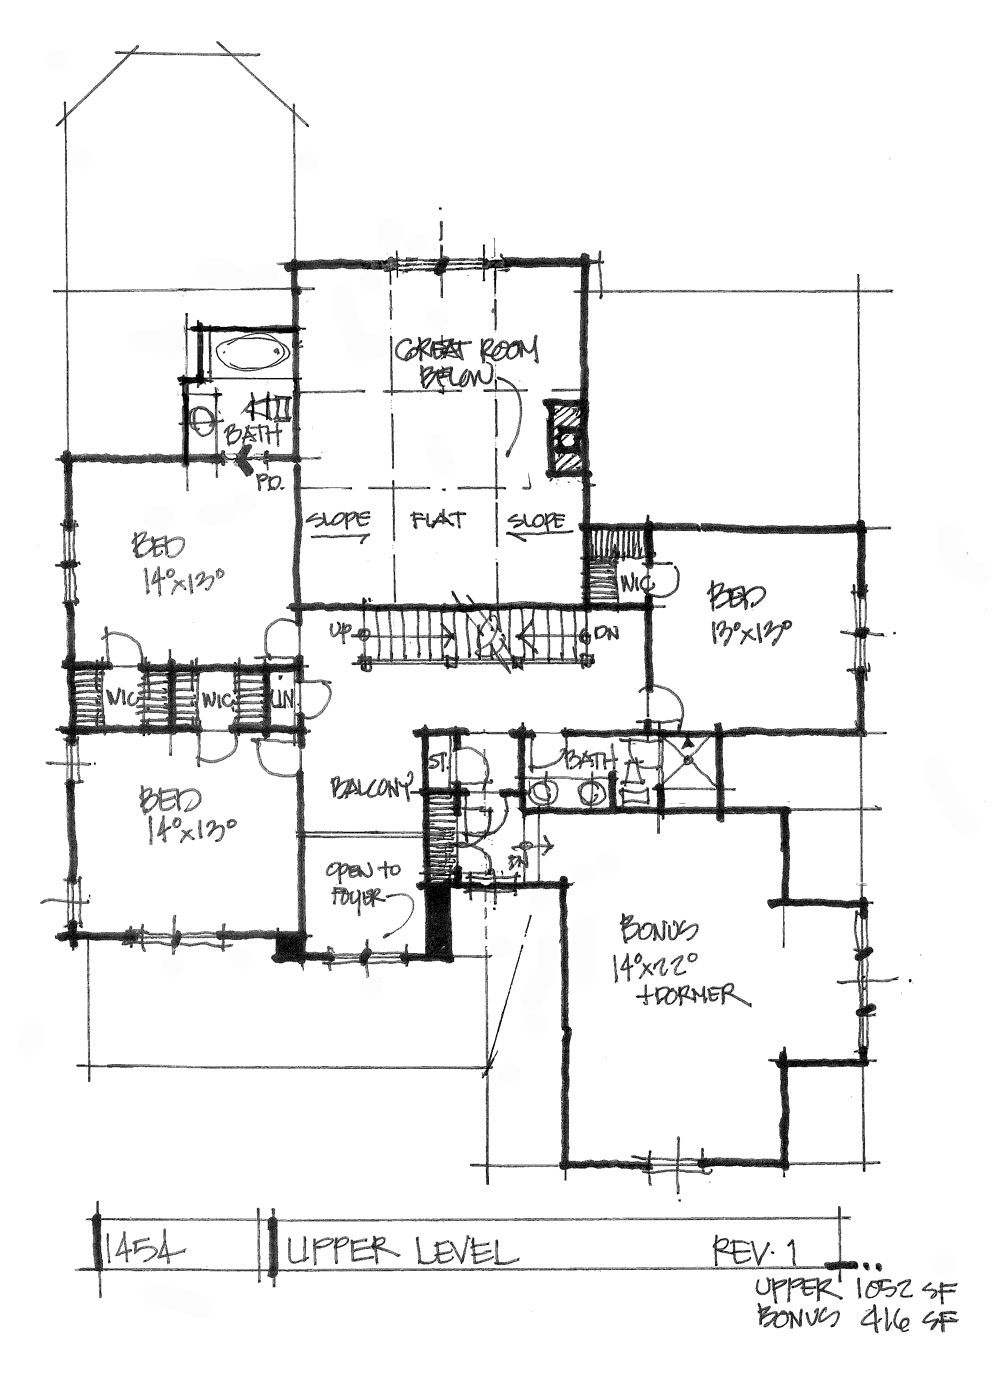 Check out the second floor plan of house plan 1454.